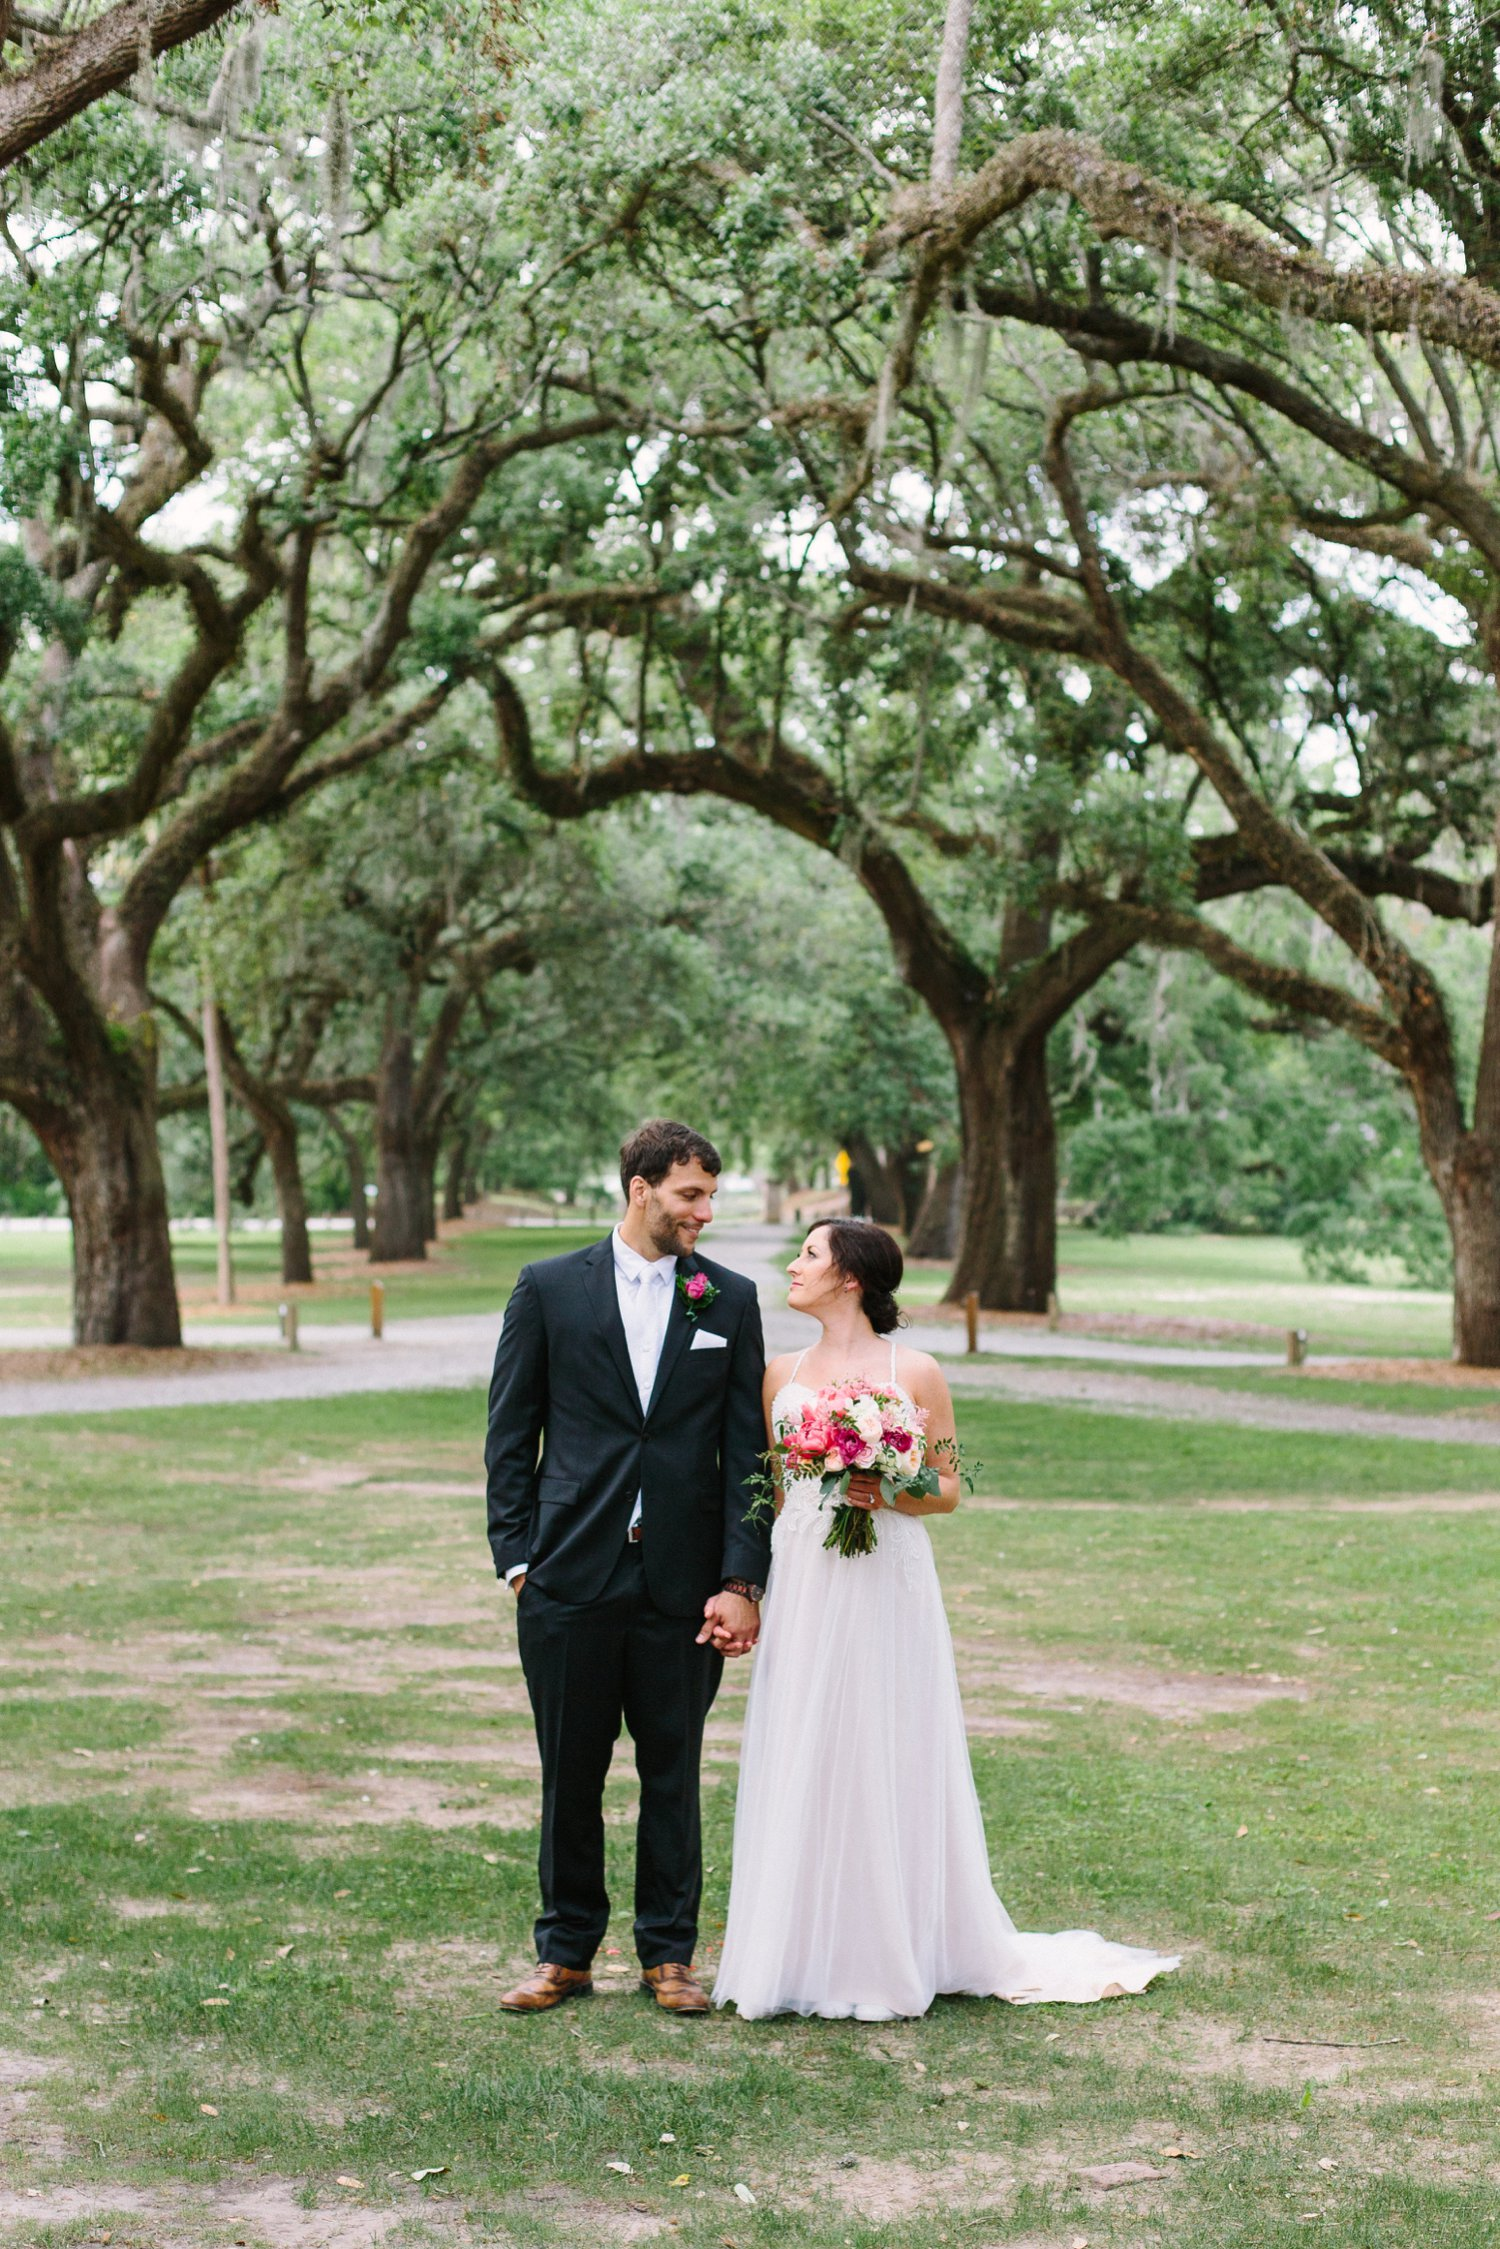 Lindsey_A_Miller_Photography_mcleod_plantation_wedding_charleston_south_carolina_clear_tent_spring_mod_events_033.jpg